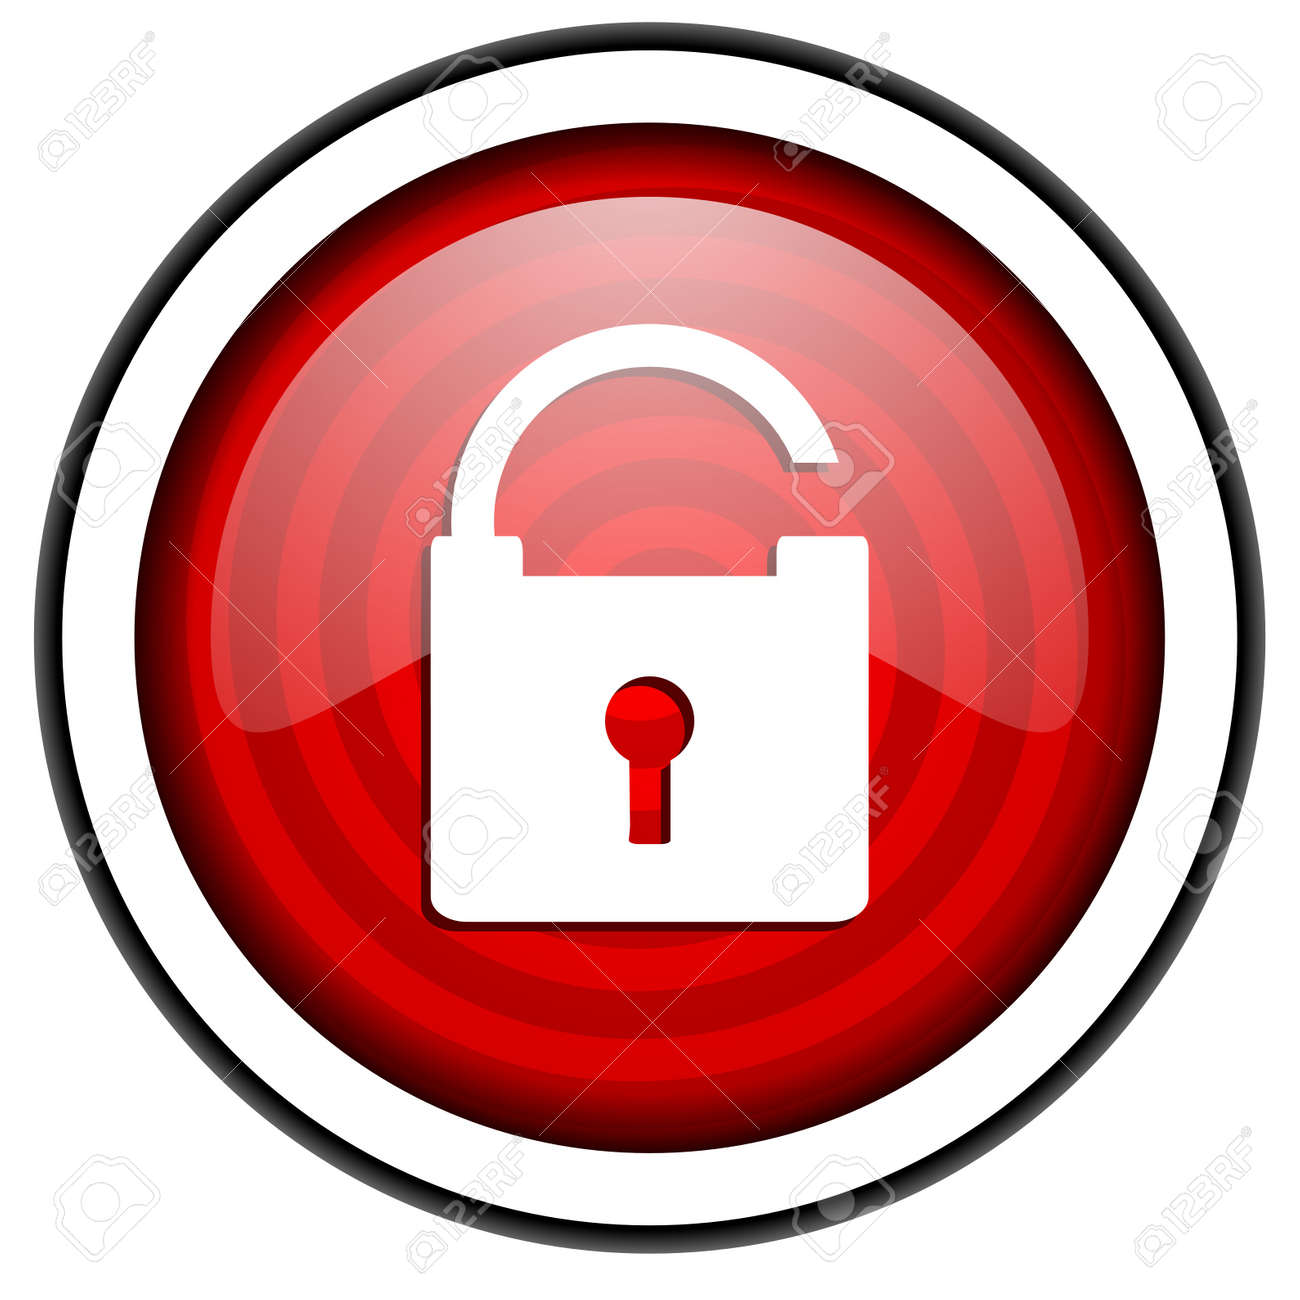 padlock red glossy icon isolated on white background Stock Photo - 16974993